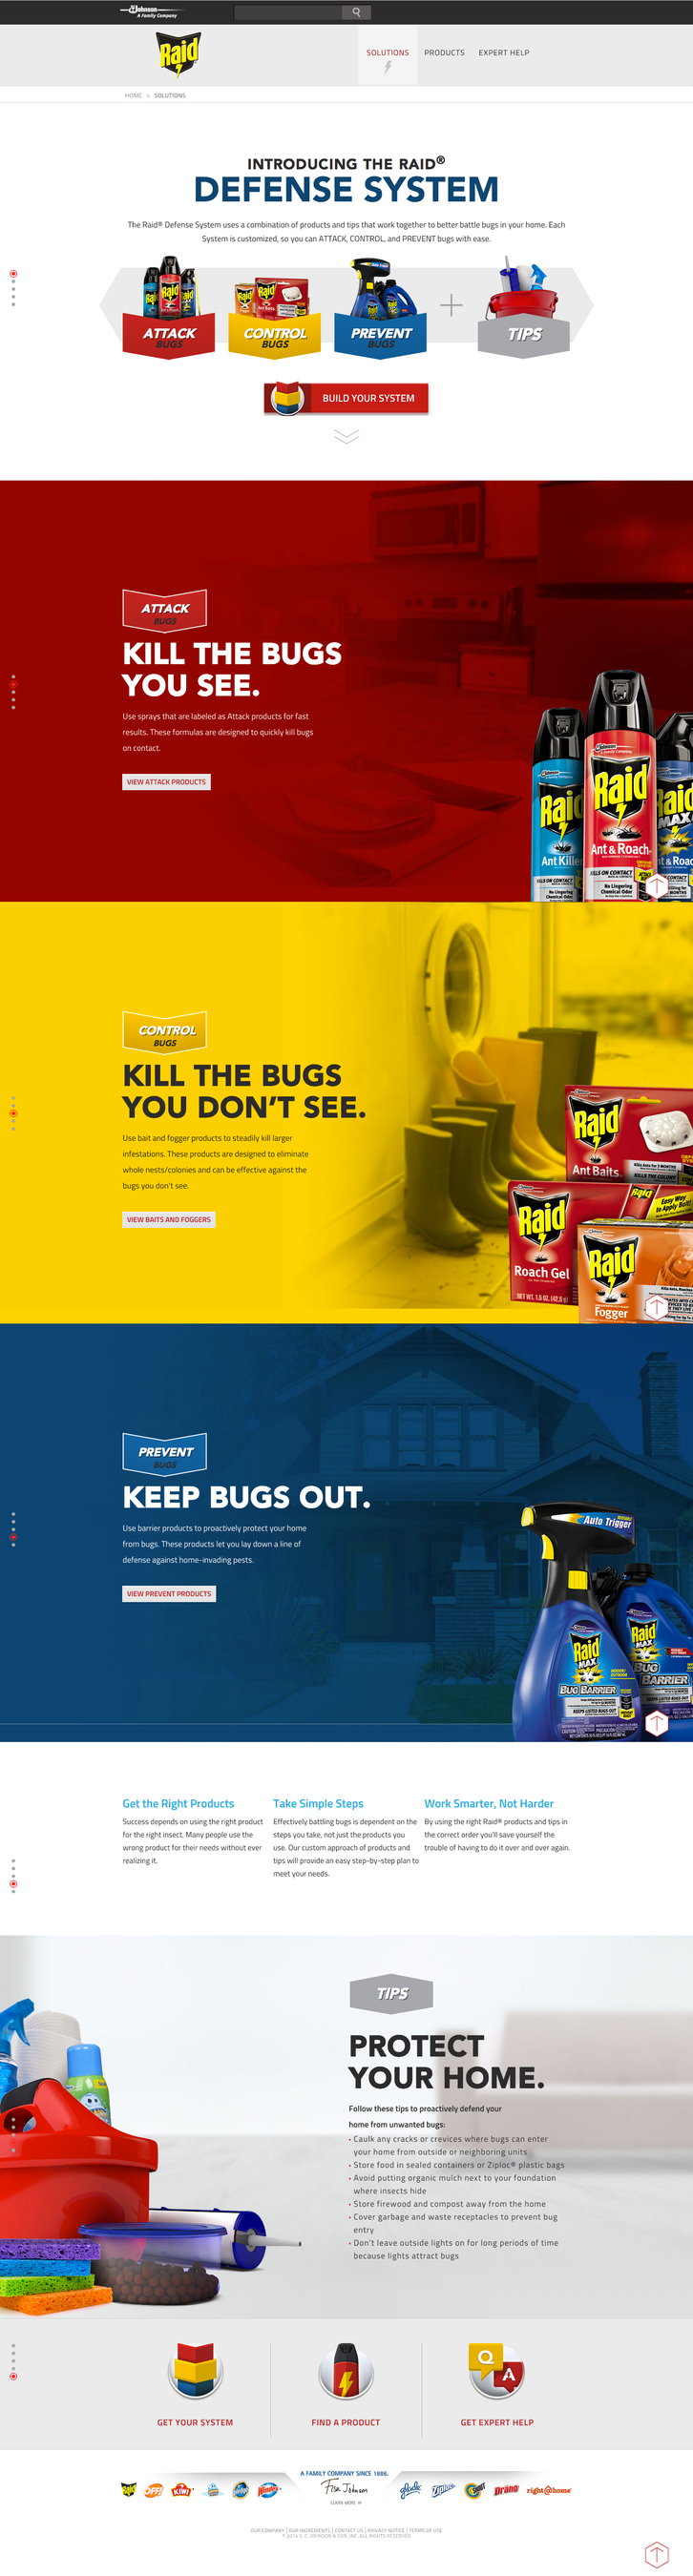 The Raid(R) Defense System uses a combination of products and tips that work together to better battle bugs in your home. Each system is customized so that you can attack, control, and prevent bugs with ease. Visit raidkillsbugs.com. (PRNewsFoto/SC Johnson)